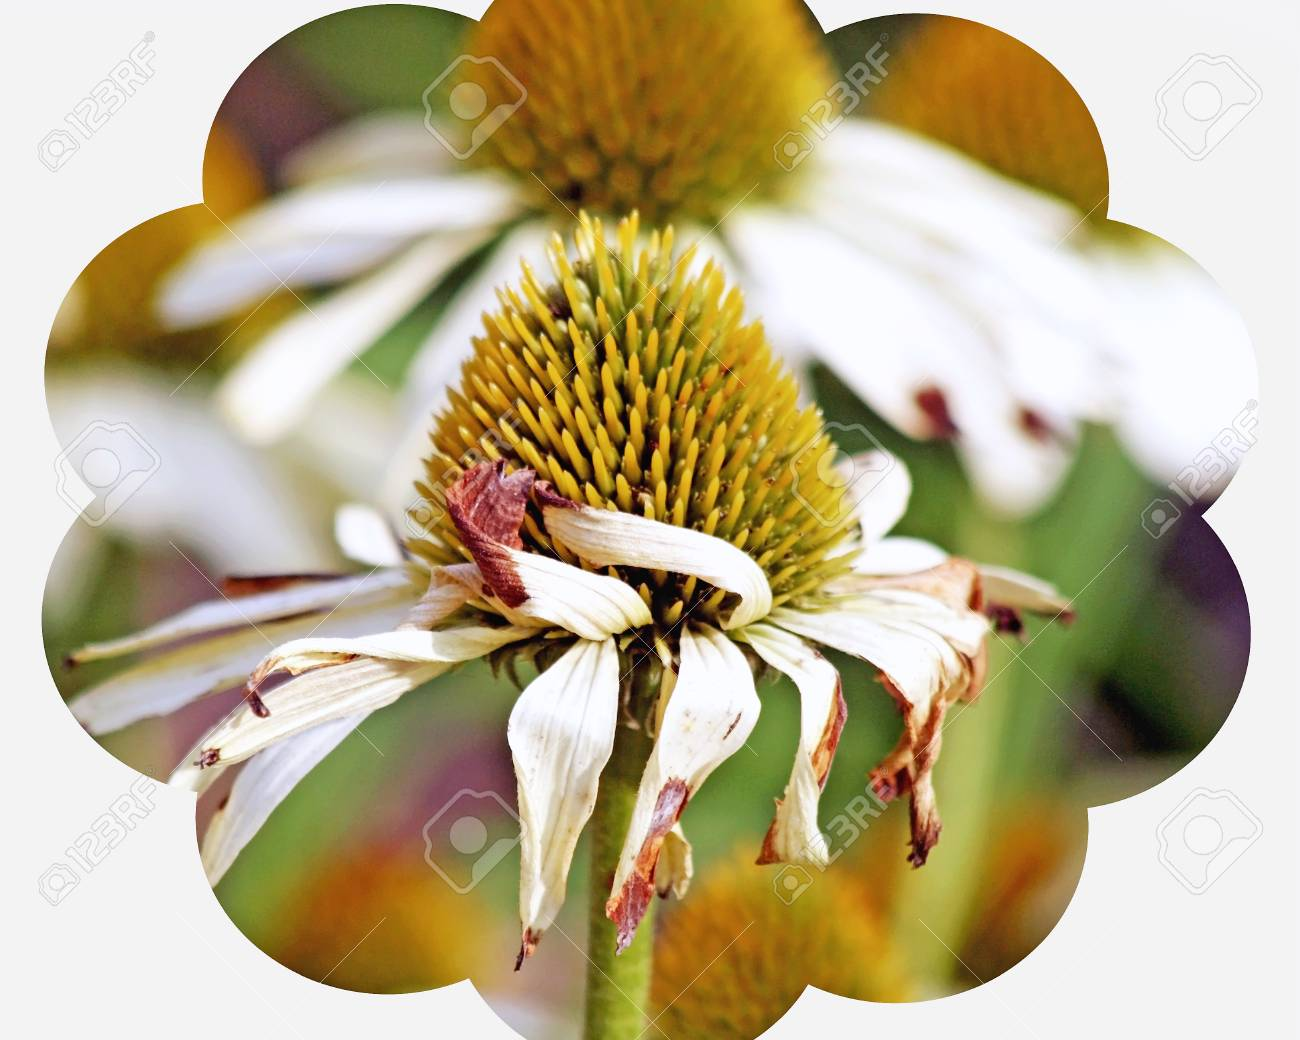 Golden Seeds Of The Cone Flower Plant White Petals Are Withered